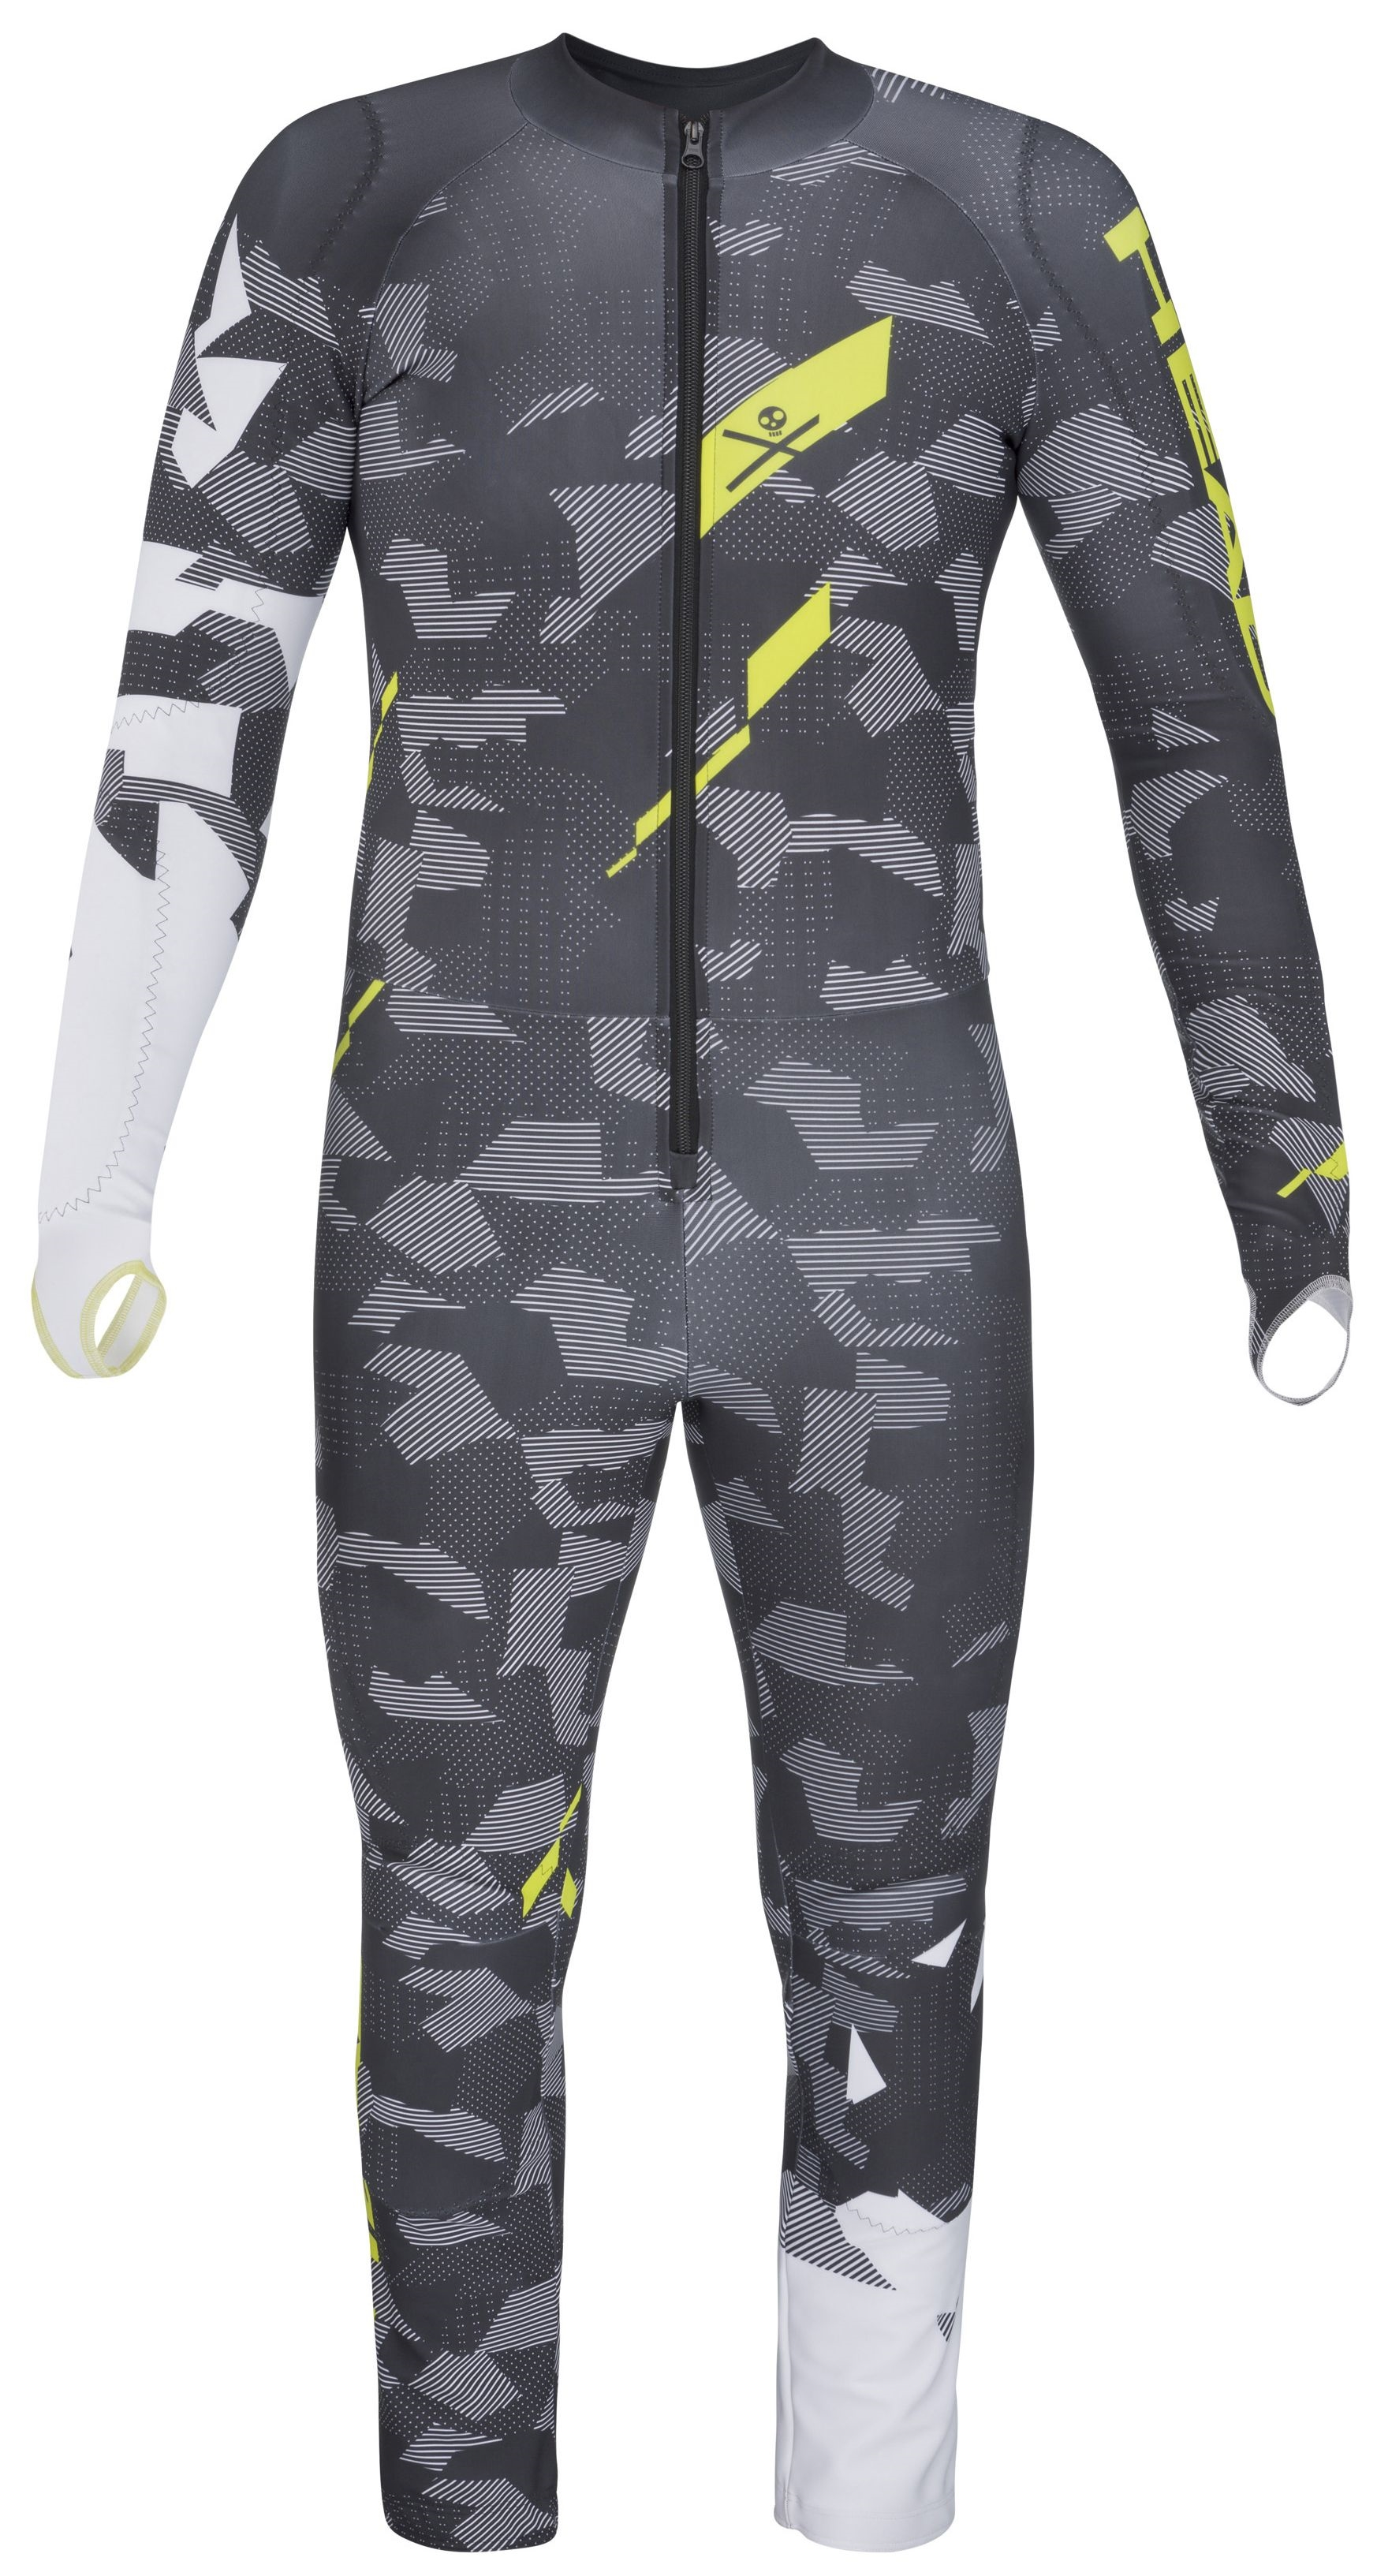 Head guma narciarska Race Voltage Suit JR Black